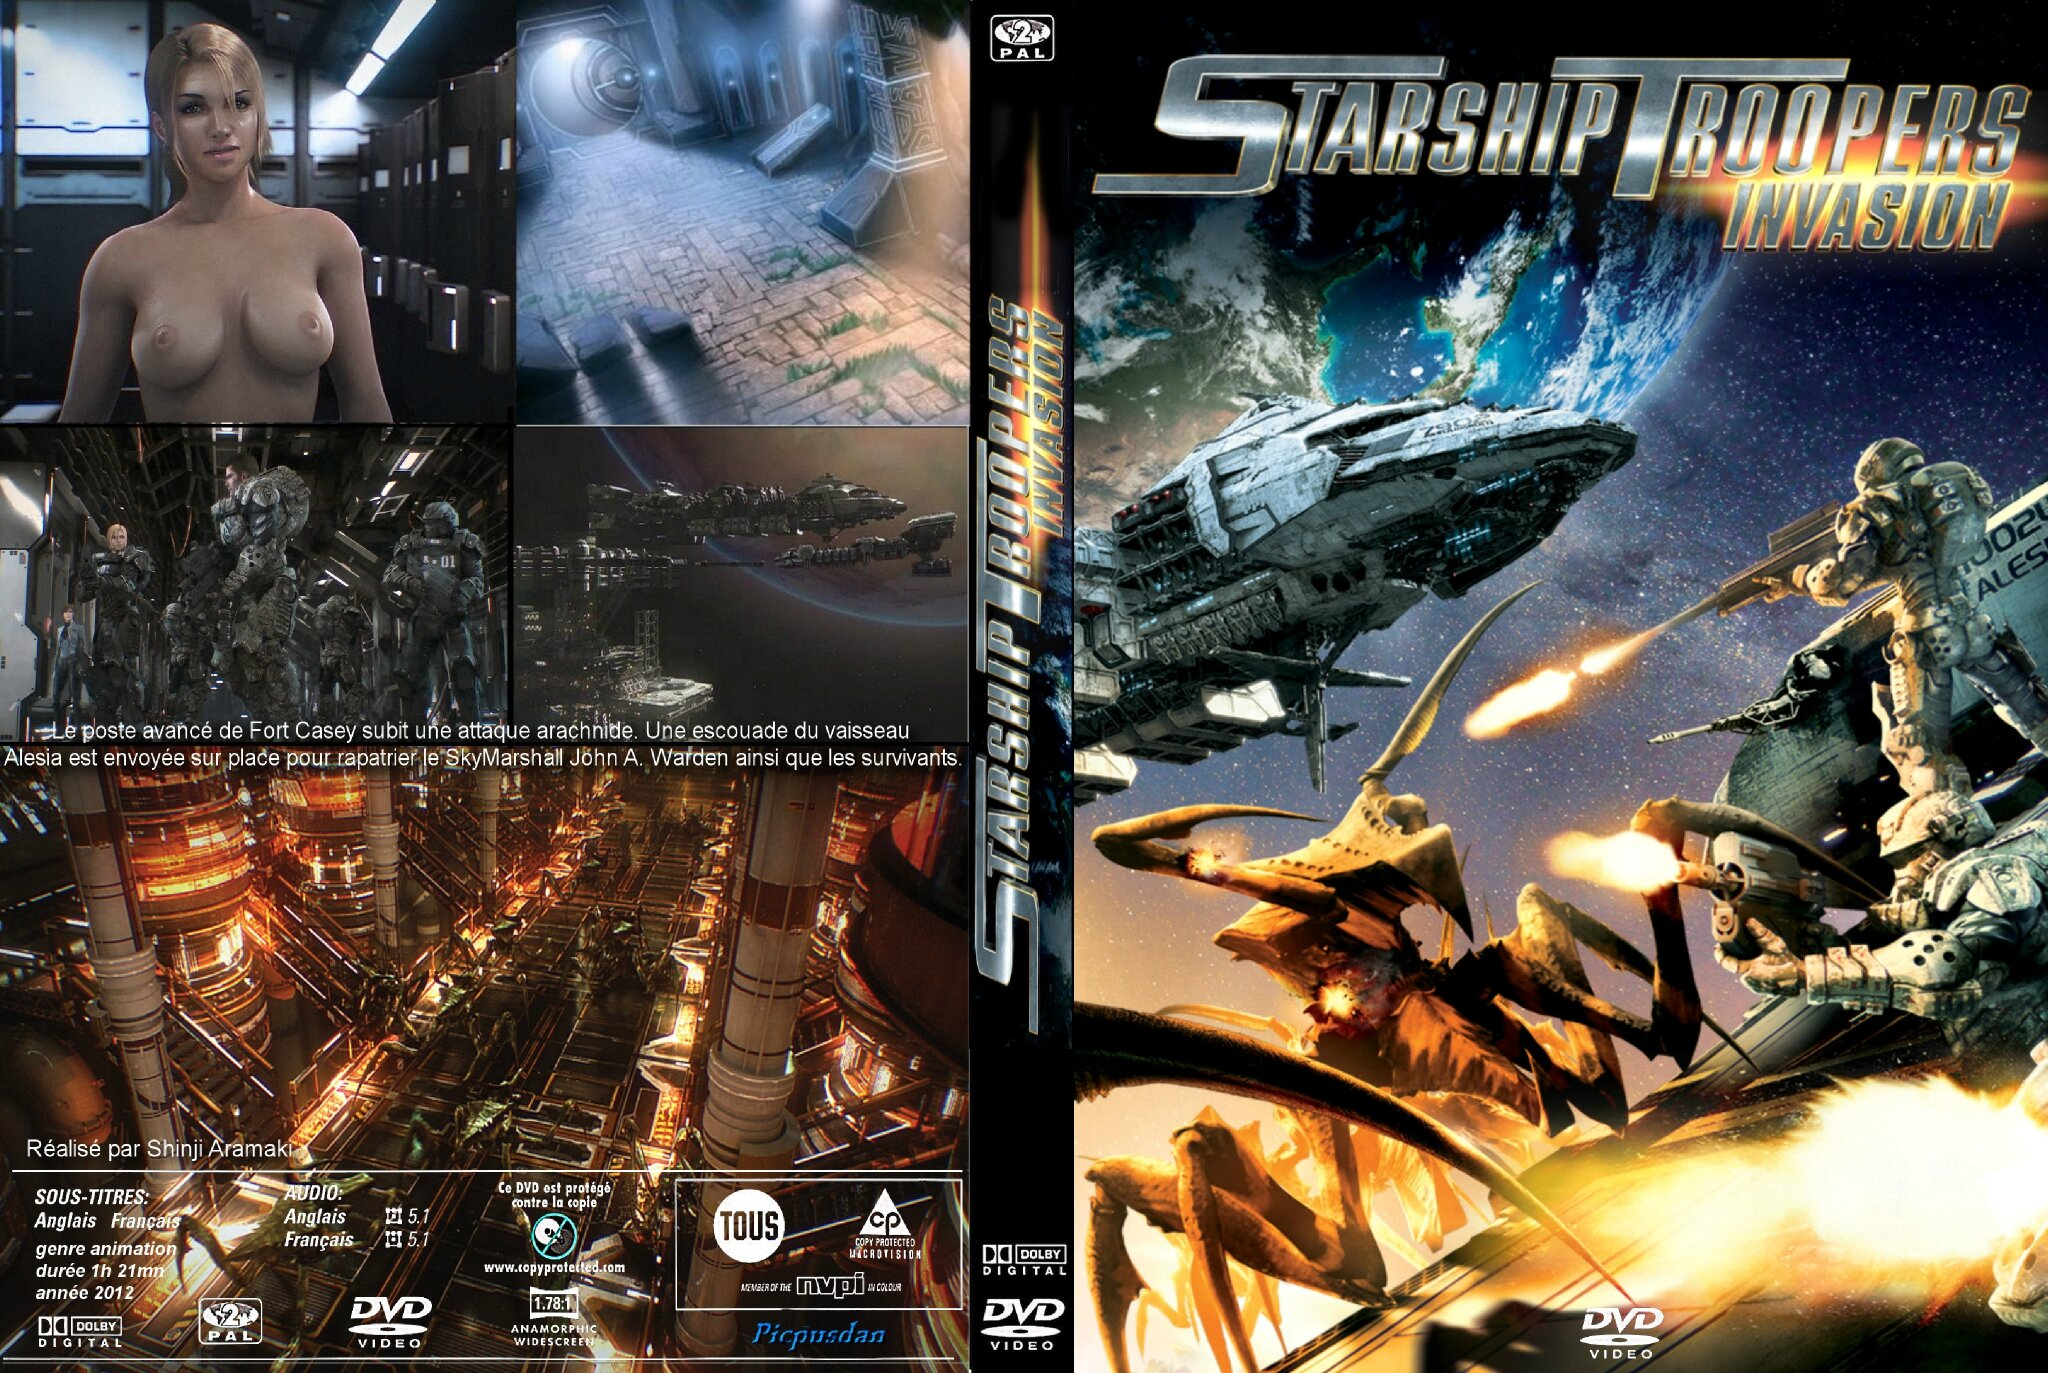 Jaquette Starship Troopers Invasion